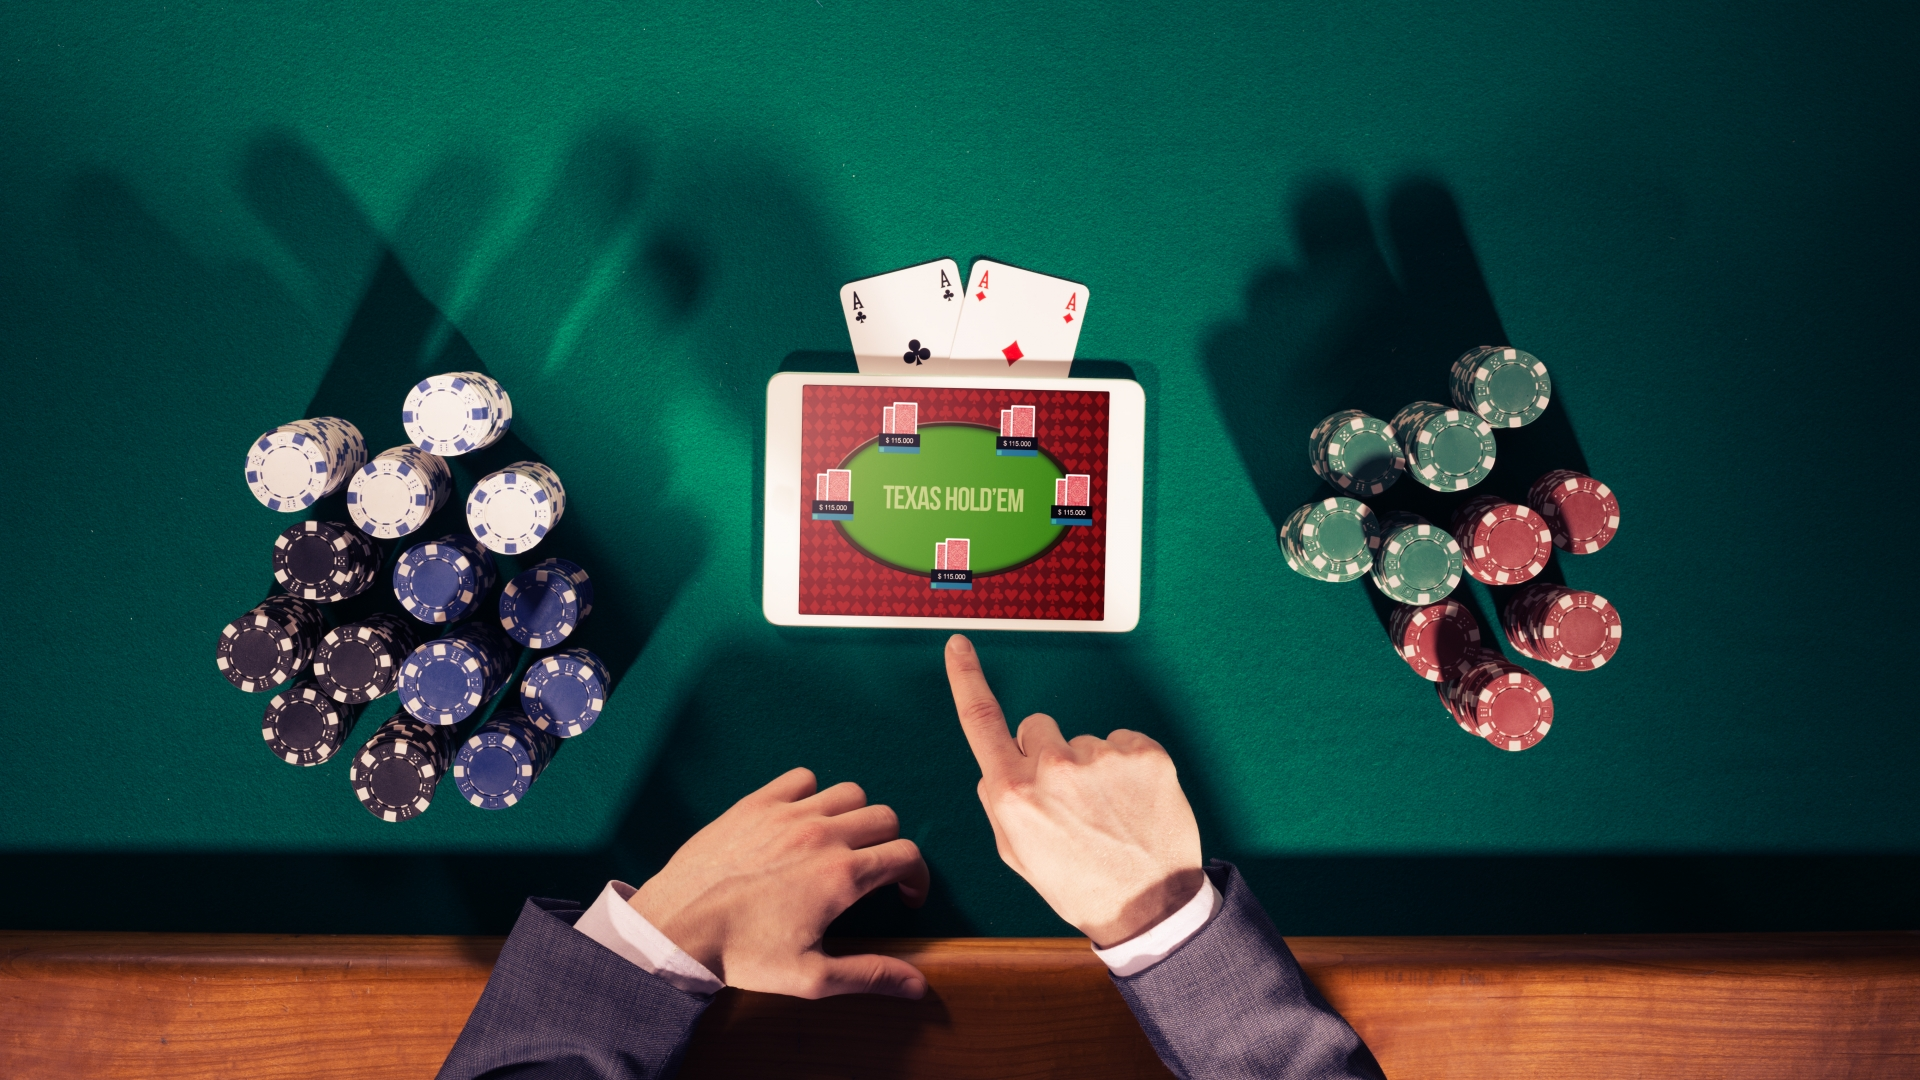 How to play poker 5 card stud